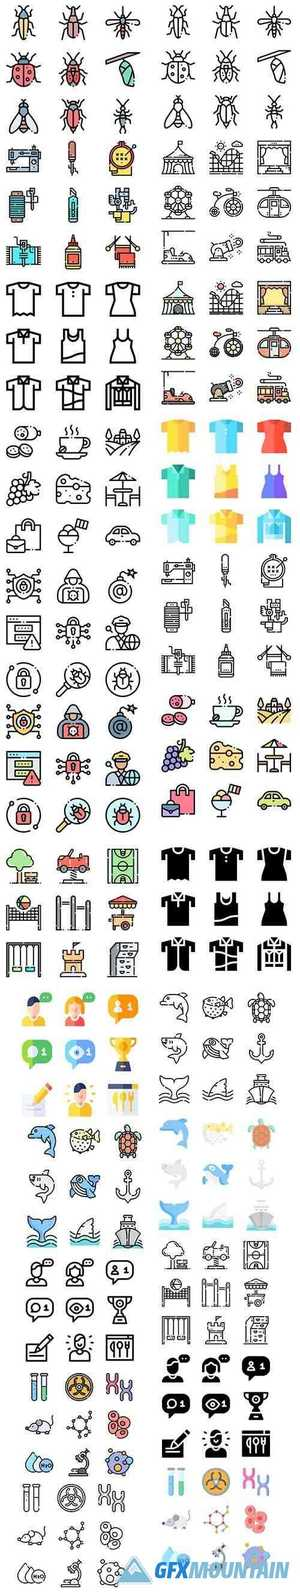 Vector Icons - More 1000+ Icons in 1 Pack!